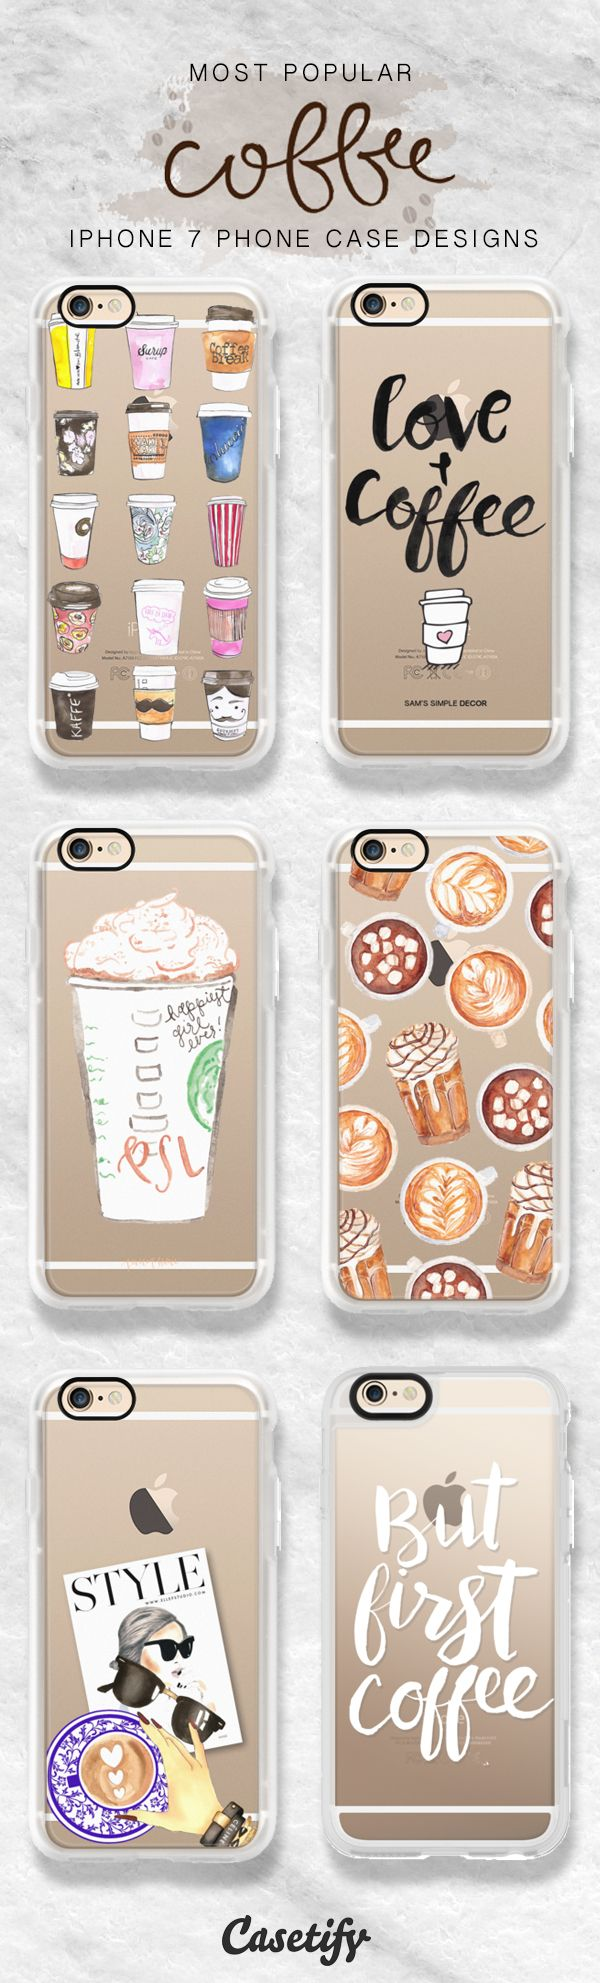 Most popular iPhone 7 case designs for you coffee addicts. Shop these designs here >> https://www.casetify.com/artworks/lx48KZnETv